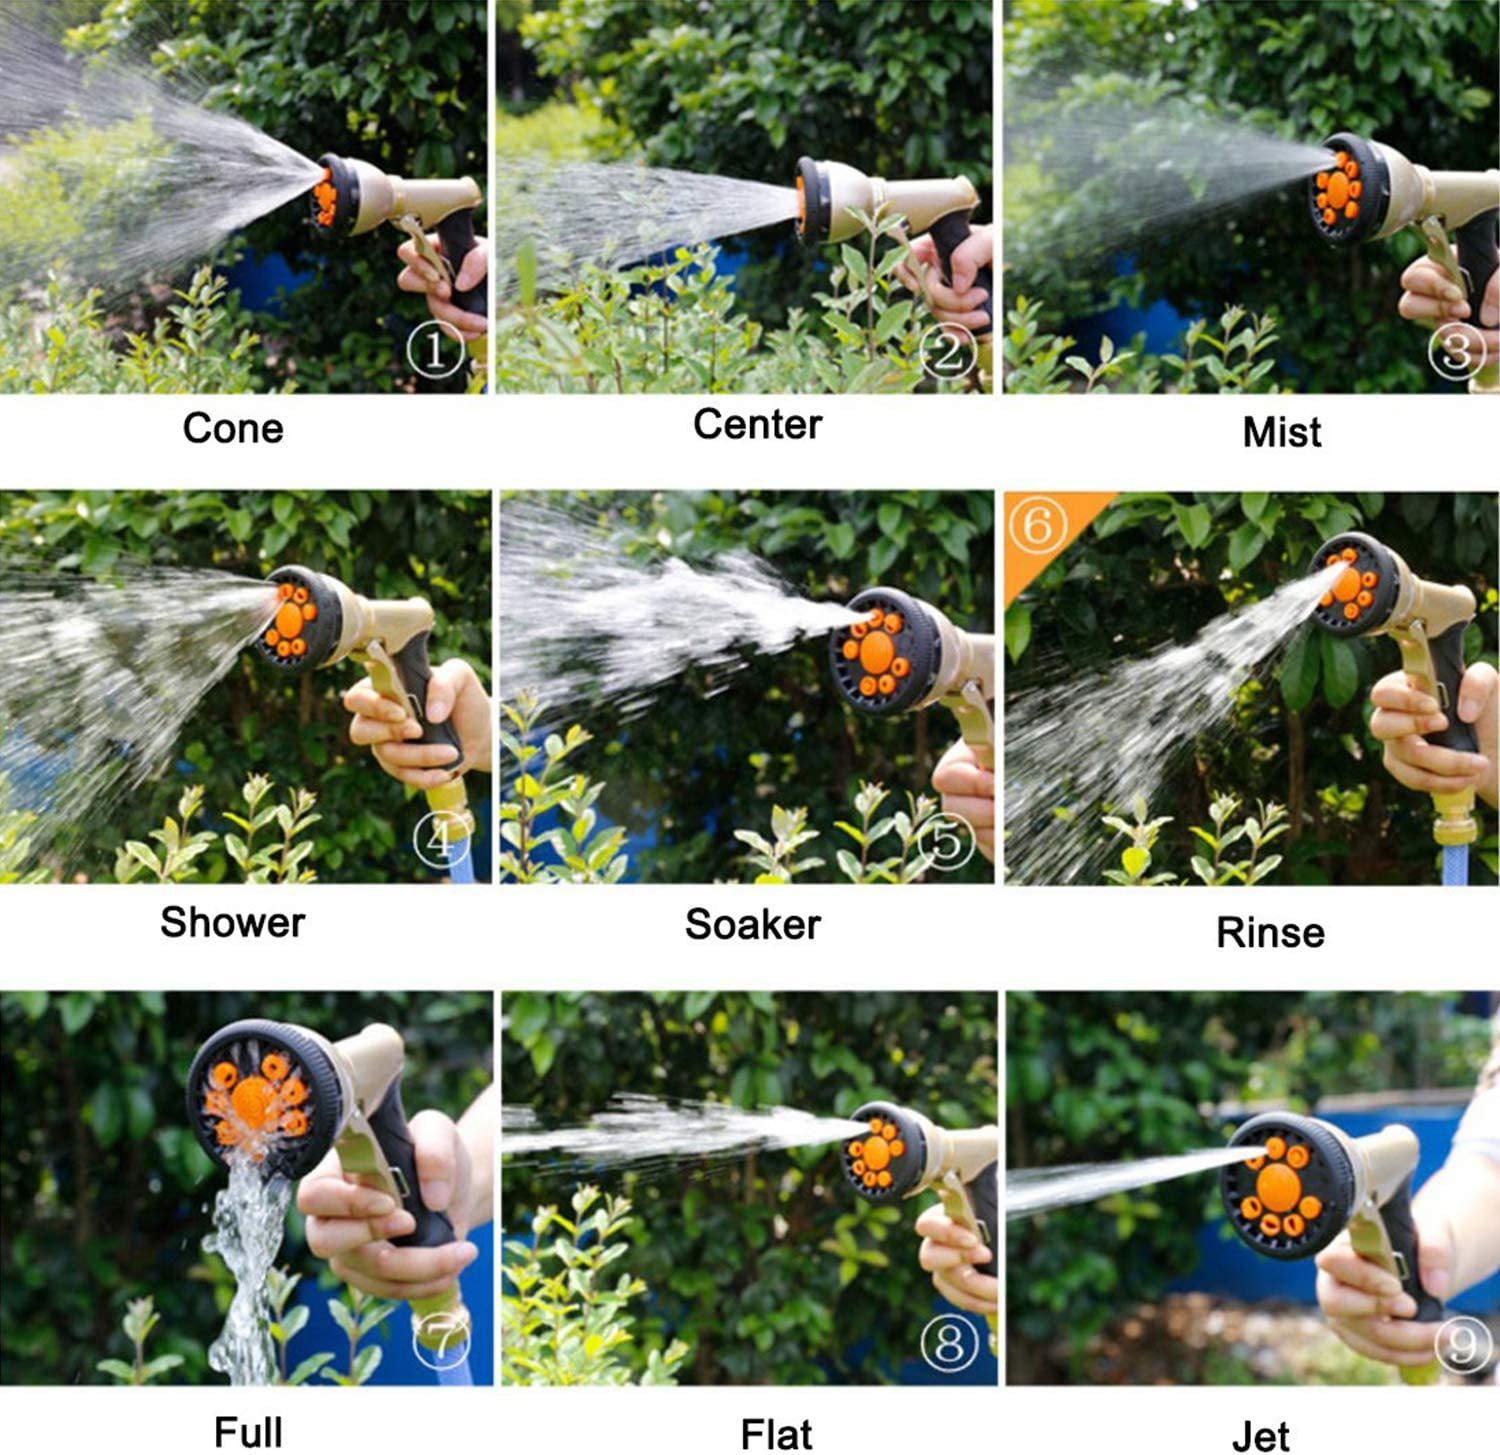 """Garden Hose Nozzle Metal Water Hose Sprayer with 3/4"""" Brass Hose Connector, 9 Adjustable Patterns Garden Nozzle for Lawn and Garden and Car Washing.: Home Improvement"""